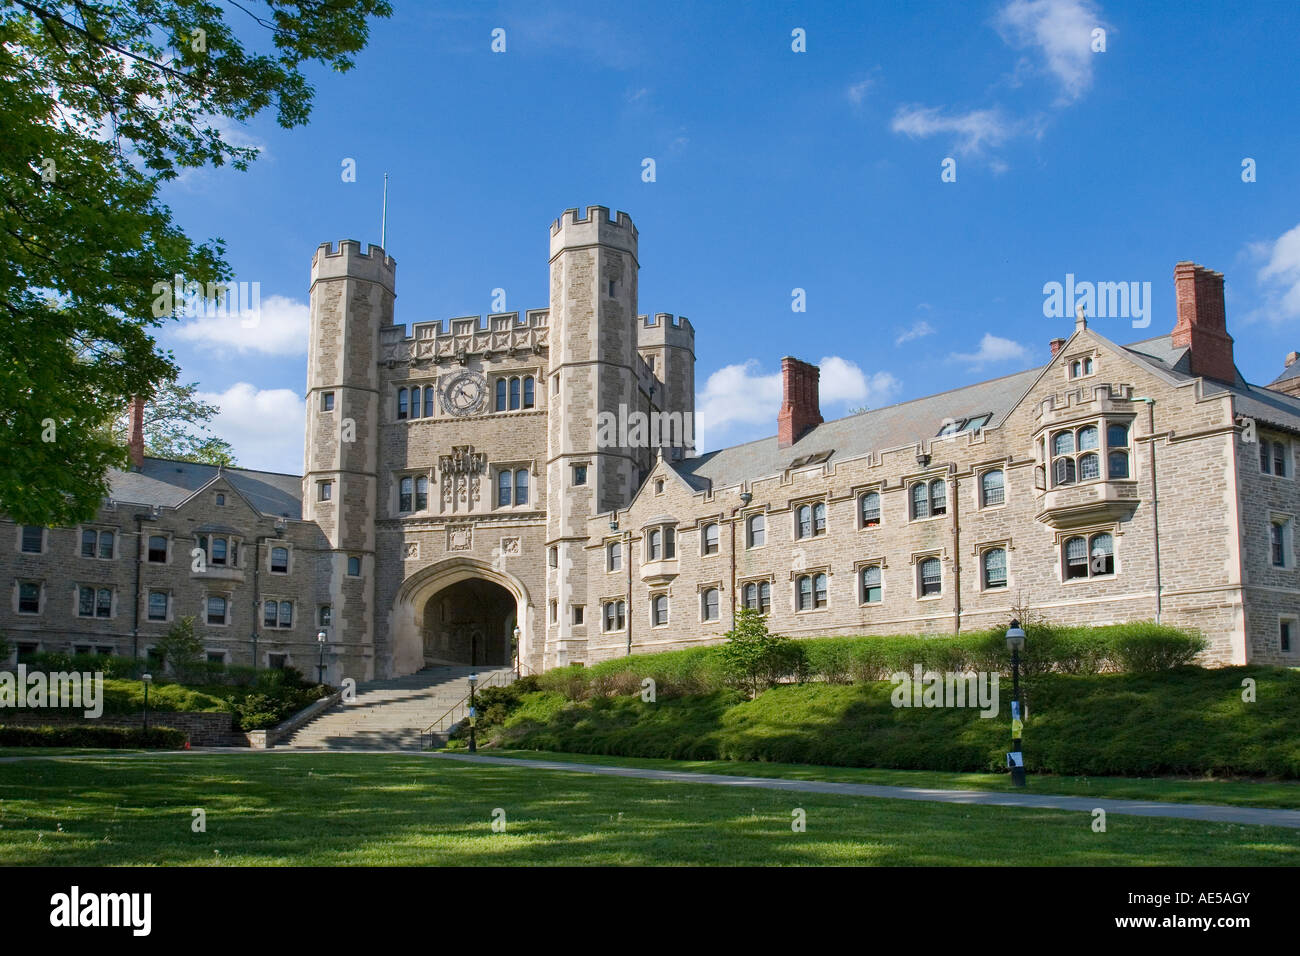 Buyers Residential and Blair Hall with clock tower dorms at Princeton University - Collegiate Gothic architecture - Stock Image